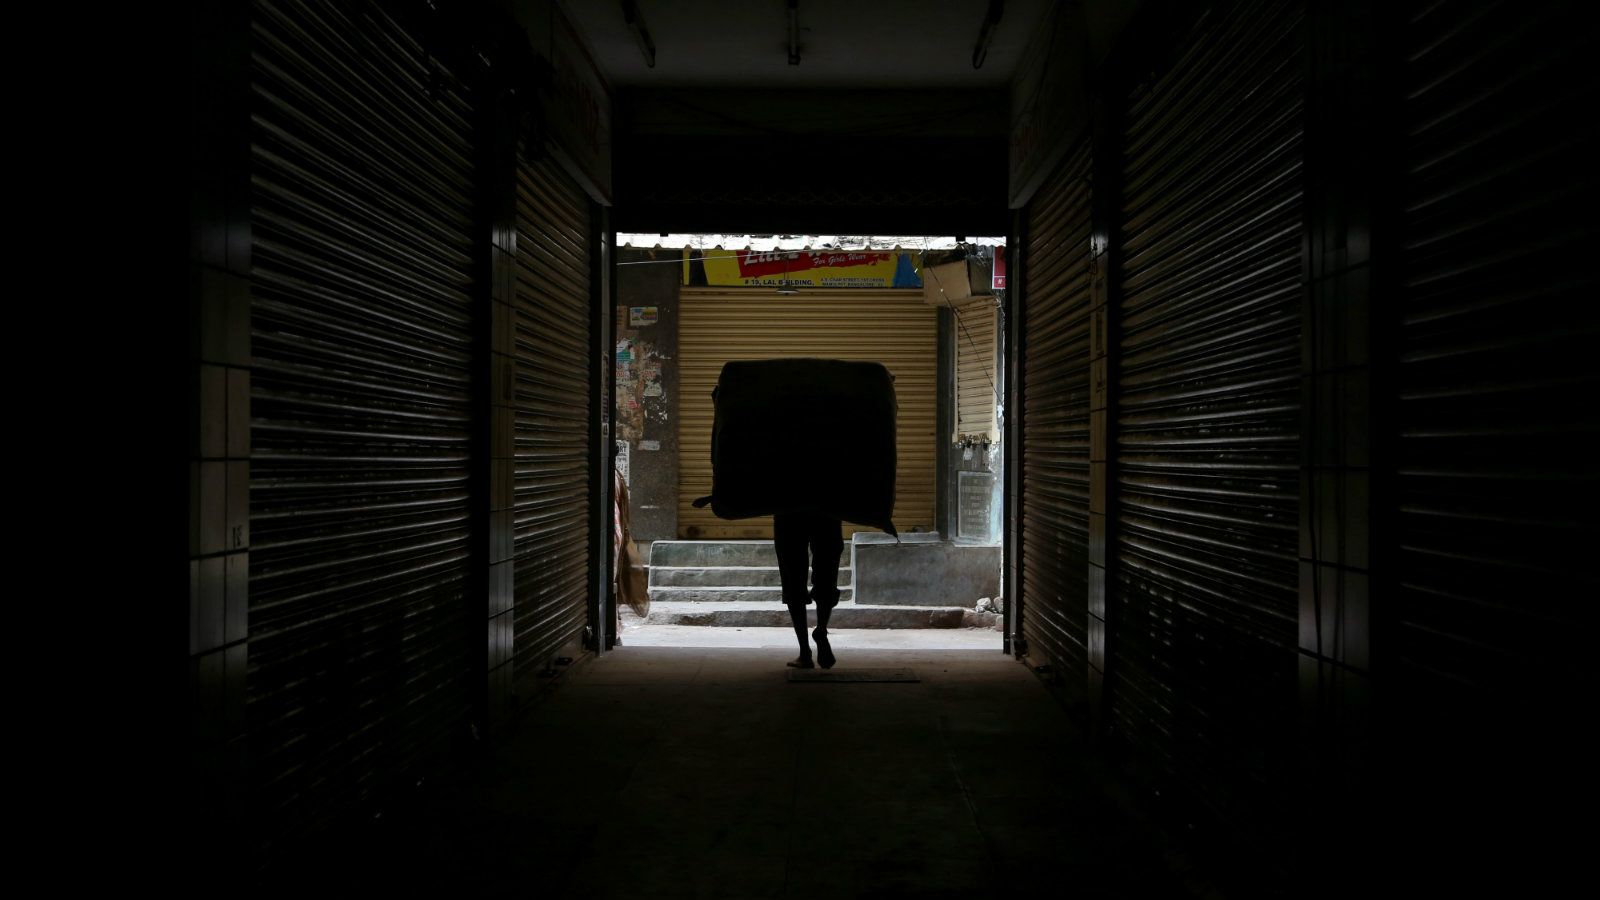 An Indian worker carries a load through a dark alley of a wholesale market on International Labor Day or May Day in Bangalore, India, Thursday, May 1, 2014.